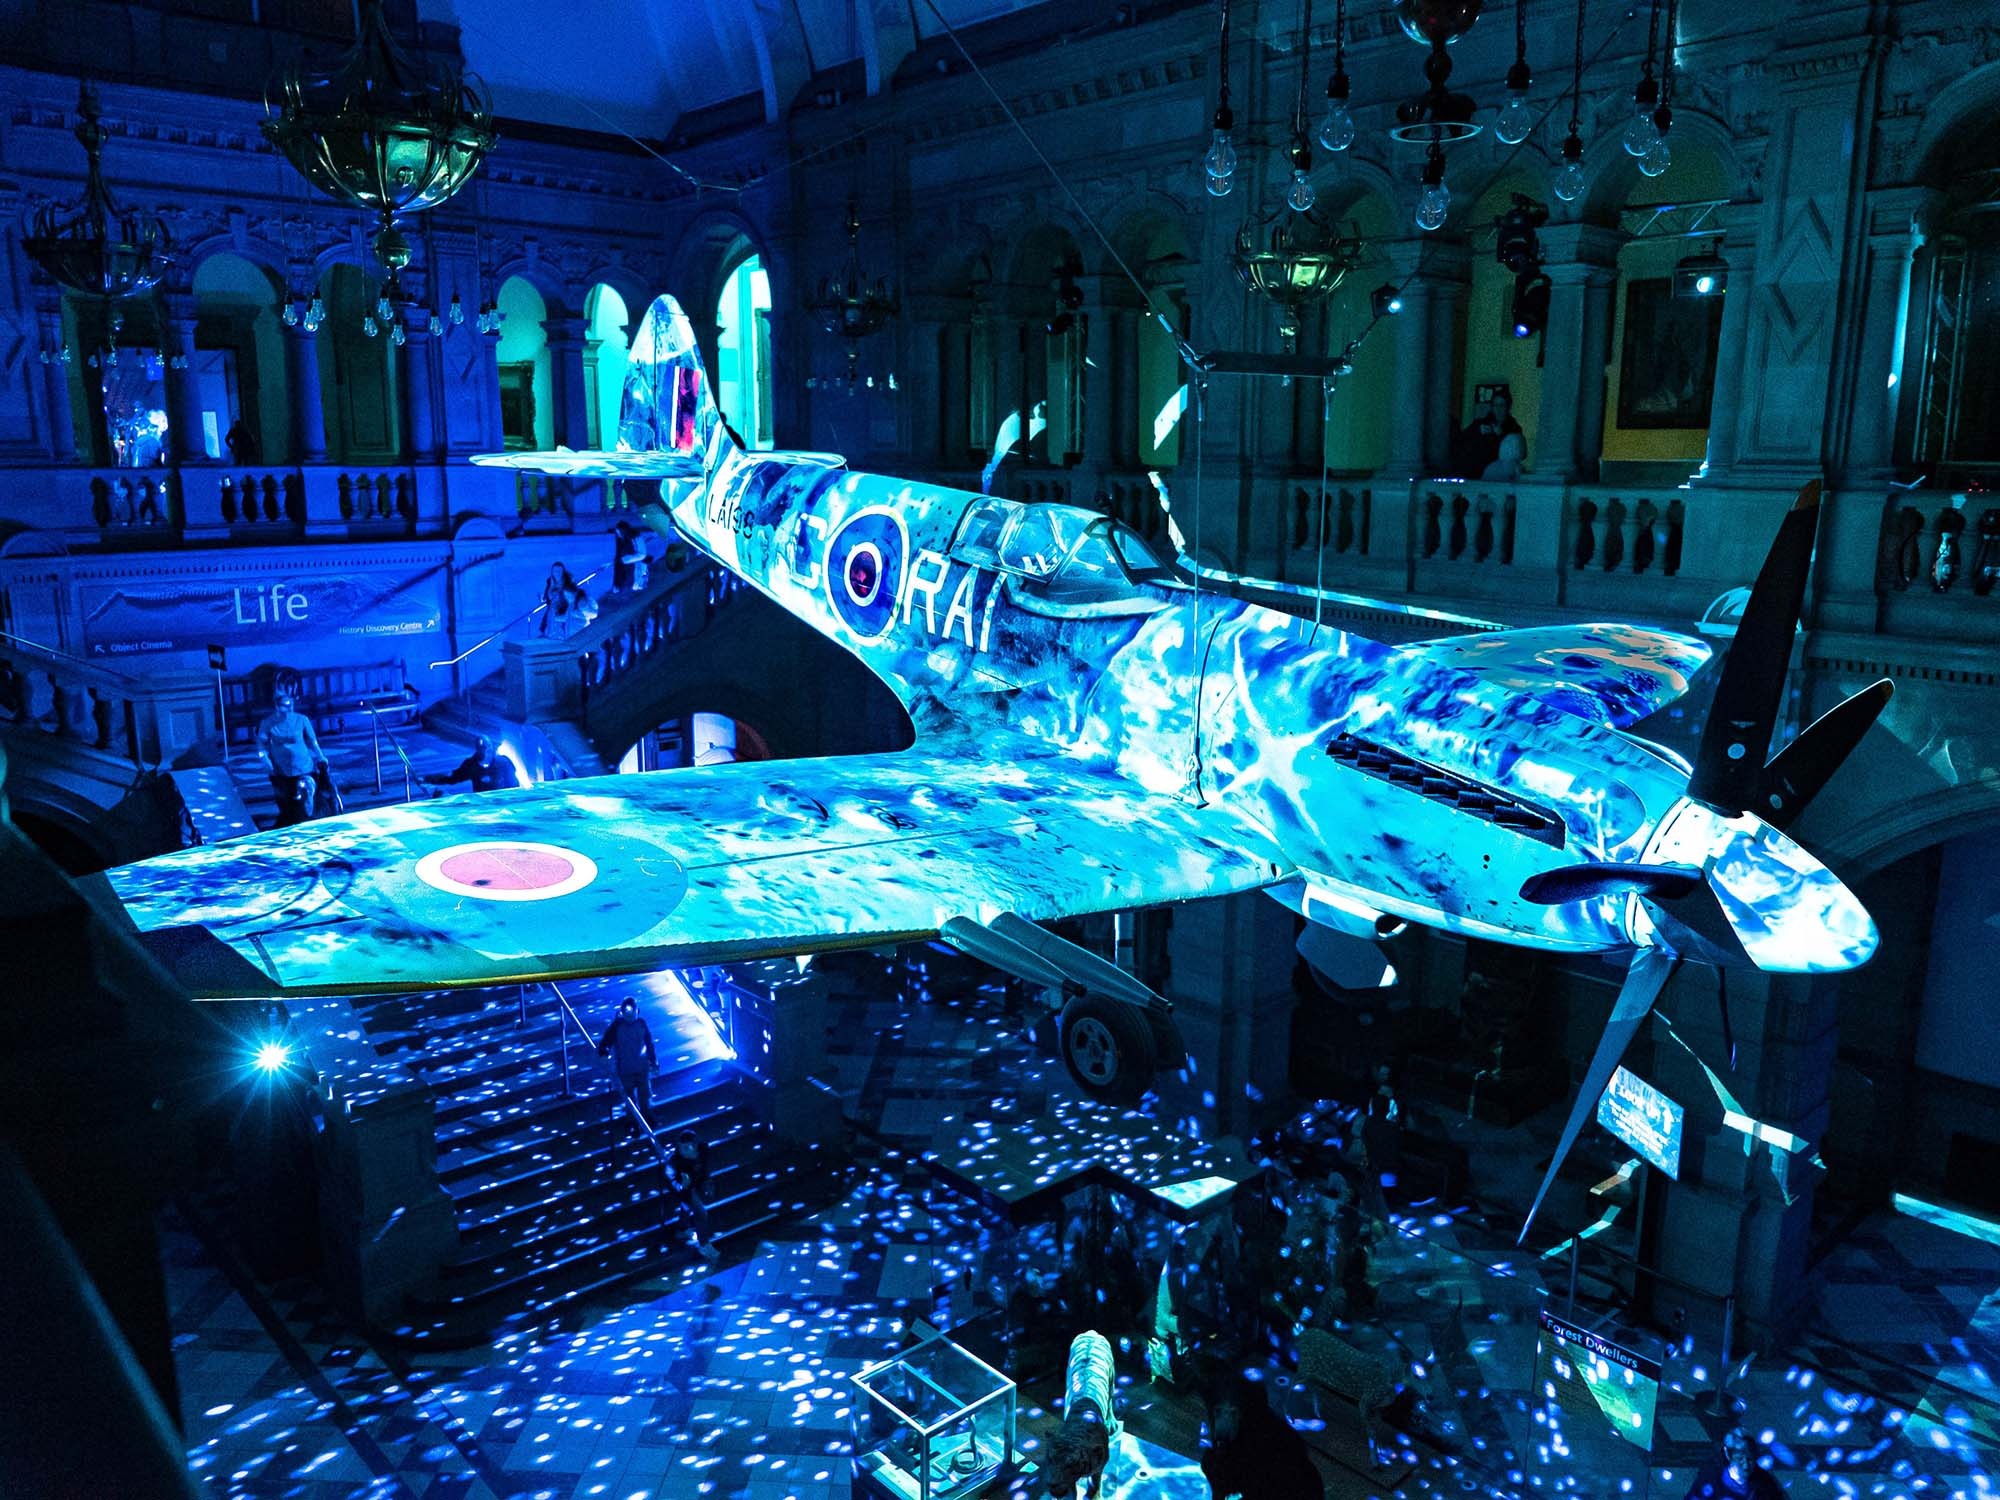 Spitfire Ice Christmas Projections at Kelvin Grove Art Museum Glasgow